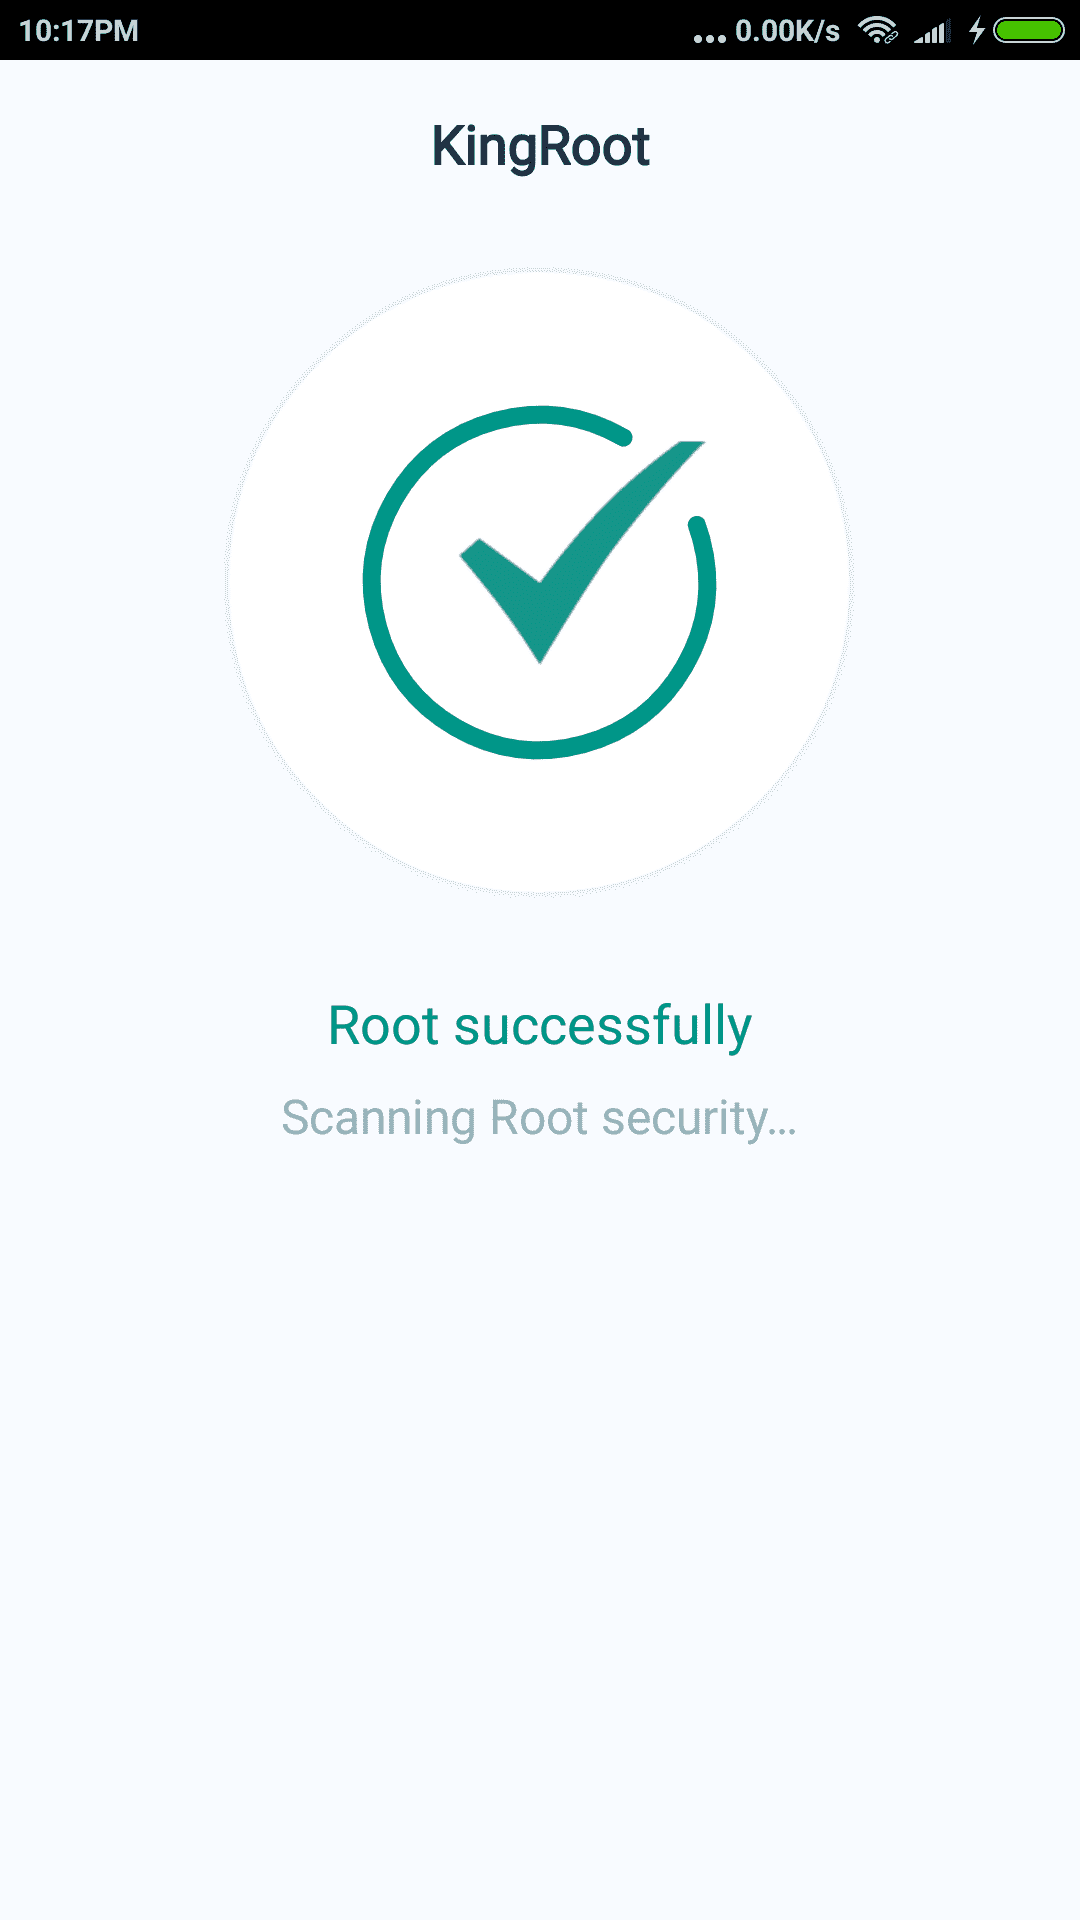 How To Root Motorola Razr D3 XT920/XT919 Without Computer - JellyDroid